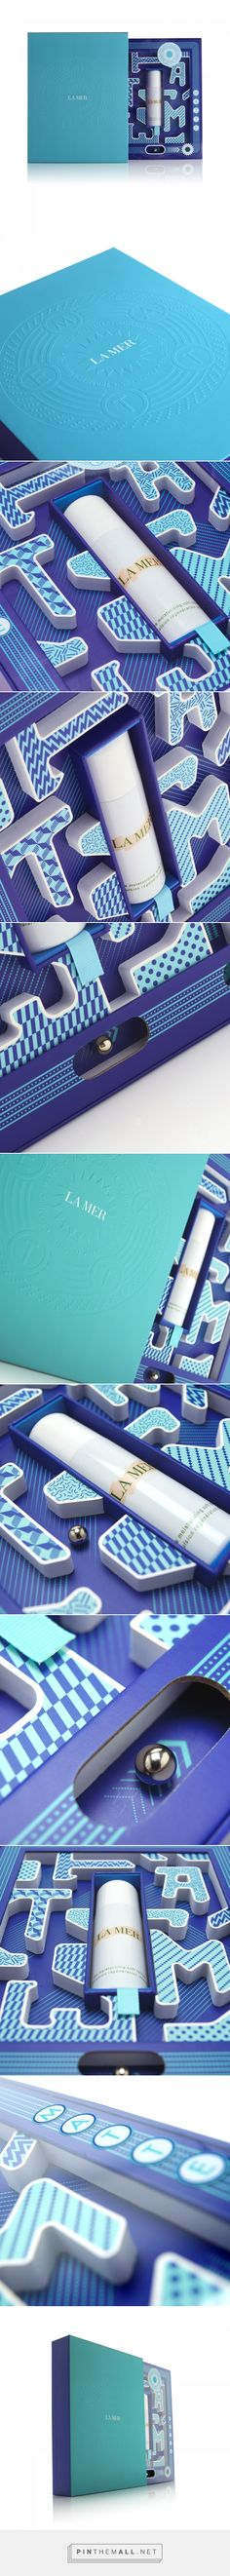 La Mer Moisturizing Matte Lotion Maze Box manufactured by MW Luxury Packaging - http://www.packagingoftheworld.com/2017/07/la-mer-moisturizing-matte-lotion-maze.html